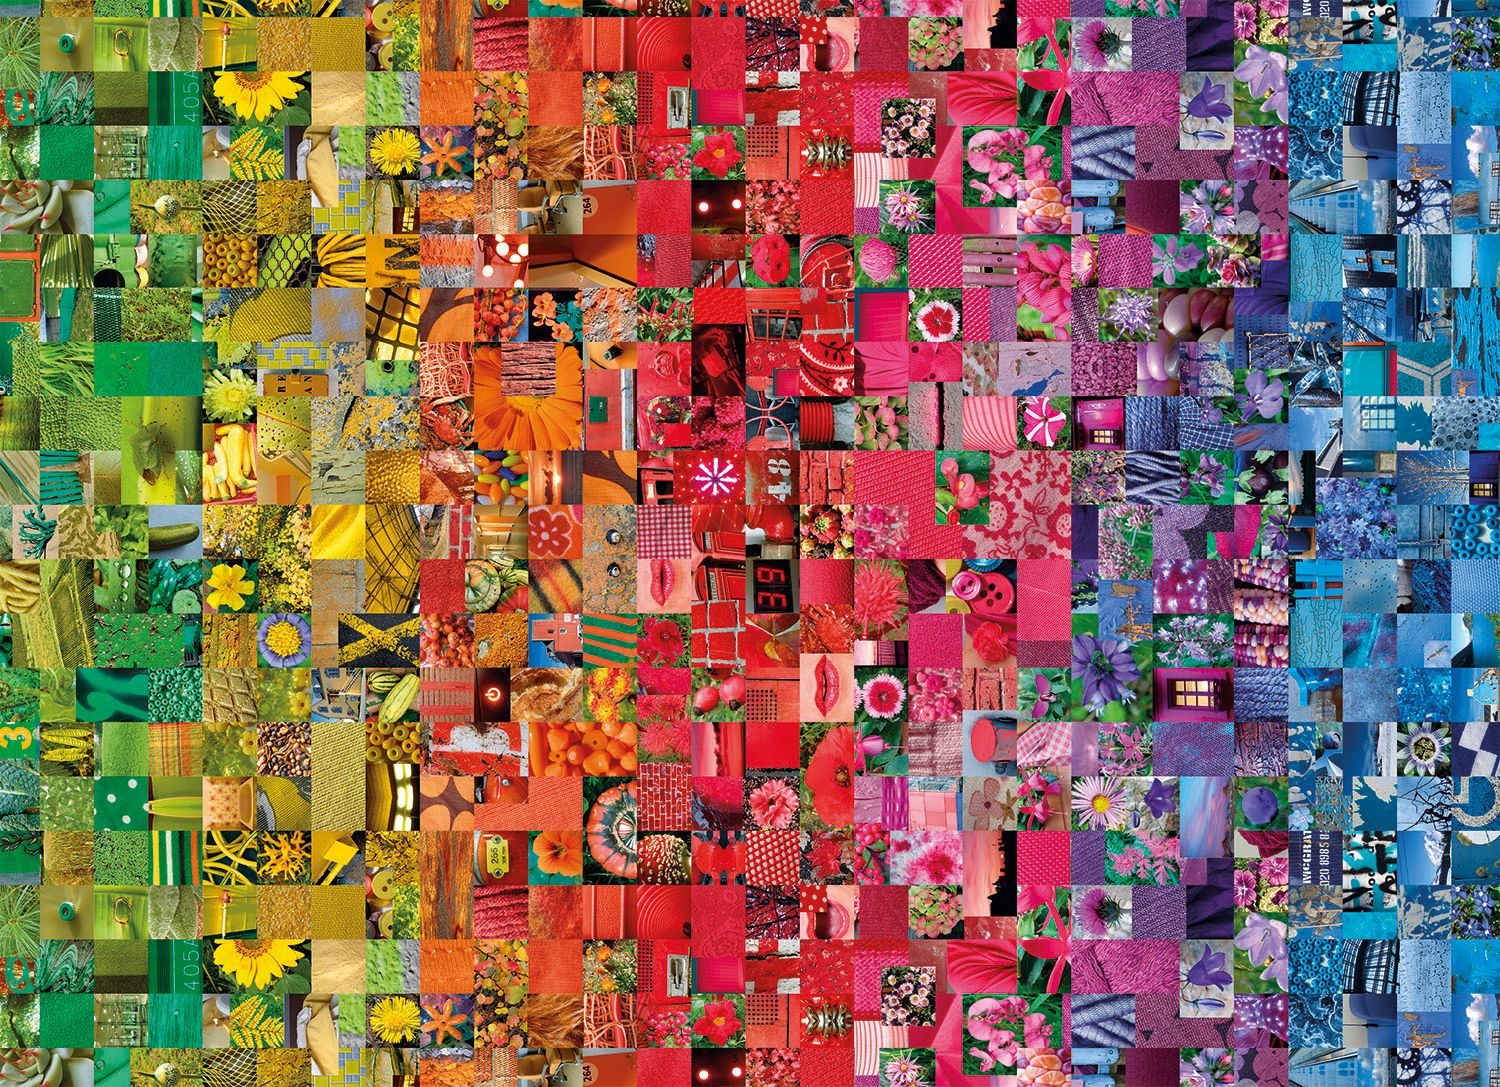 Collage Collage Jigsaw Puzzle